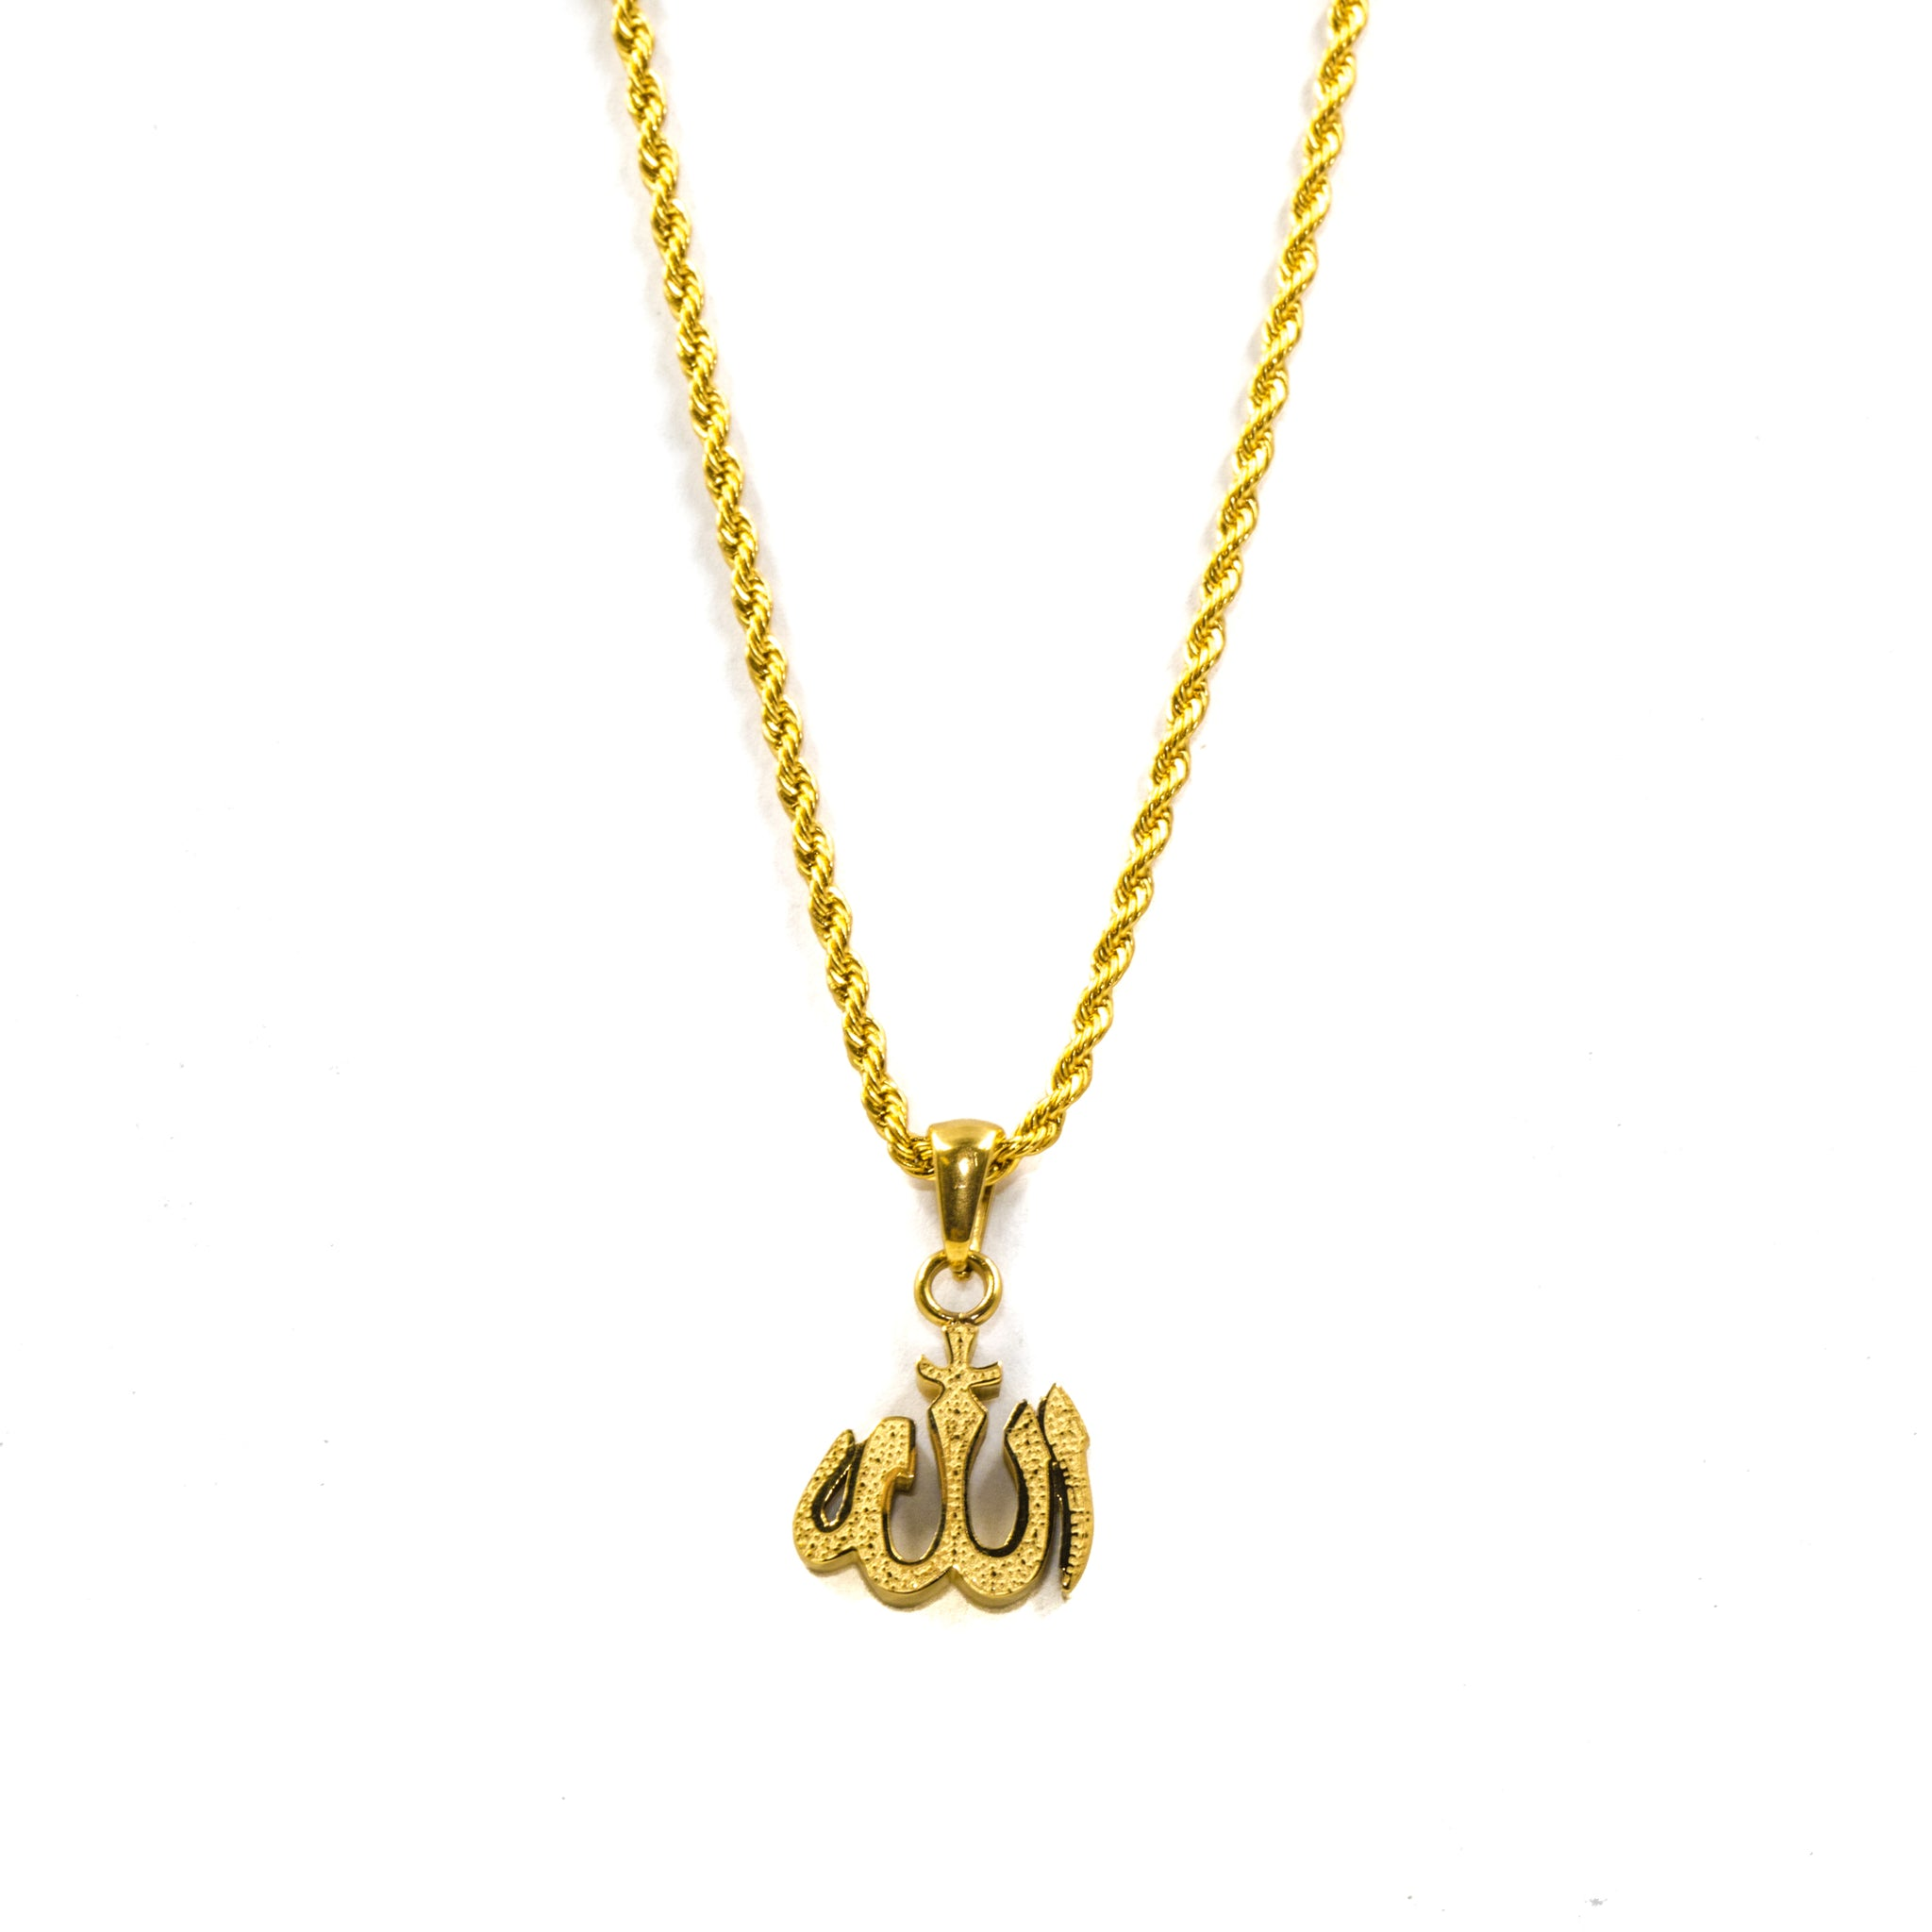 Micro Allah - 18k Gold Plated - ACCESSORIES, Golden Gilt, SNEAKER STUDIO, GOLDEN GILT, DESIGN BY TSS